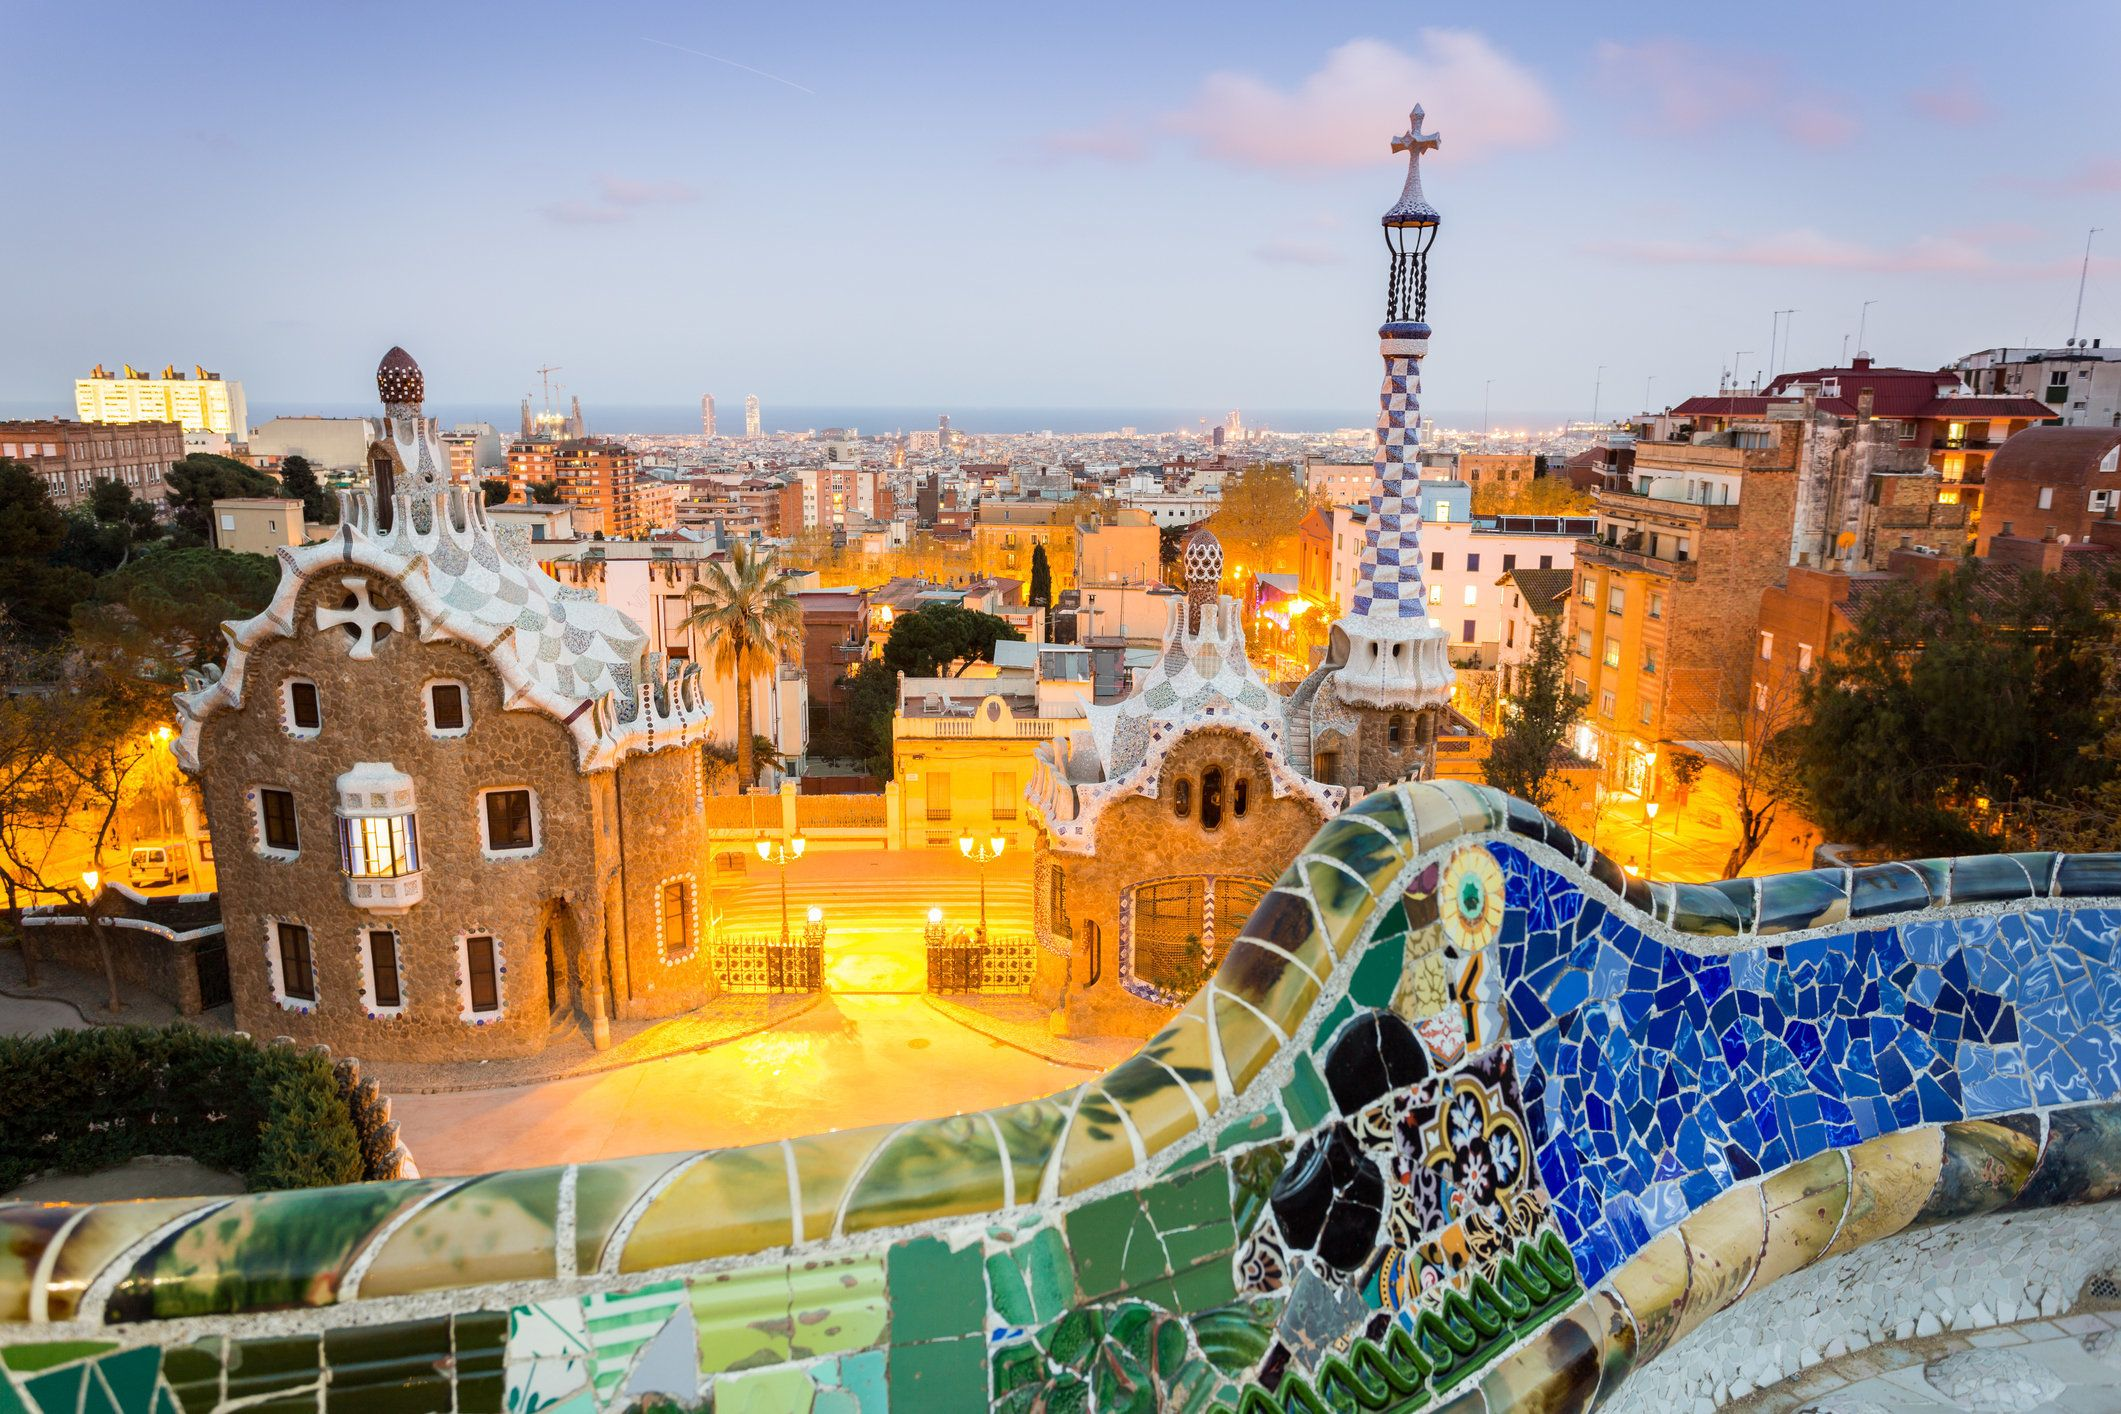 Sunset over the amazing Park Guell in Barcelona, stunning park designed by Antonio Gaudi. Benches with the Trencadis Tecnique. That's one of the most visited and famous attractions in the Spanish city.